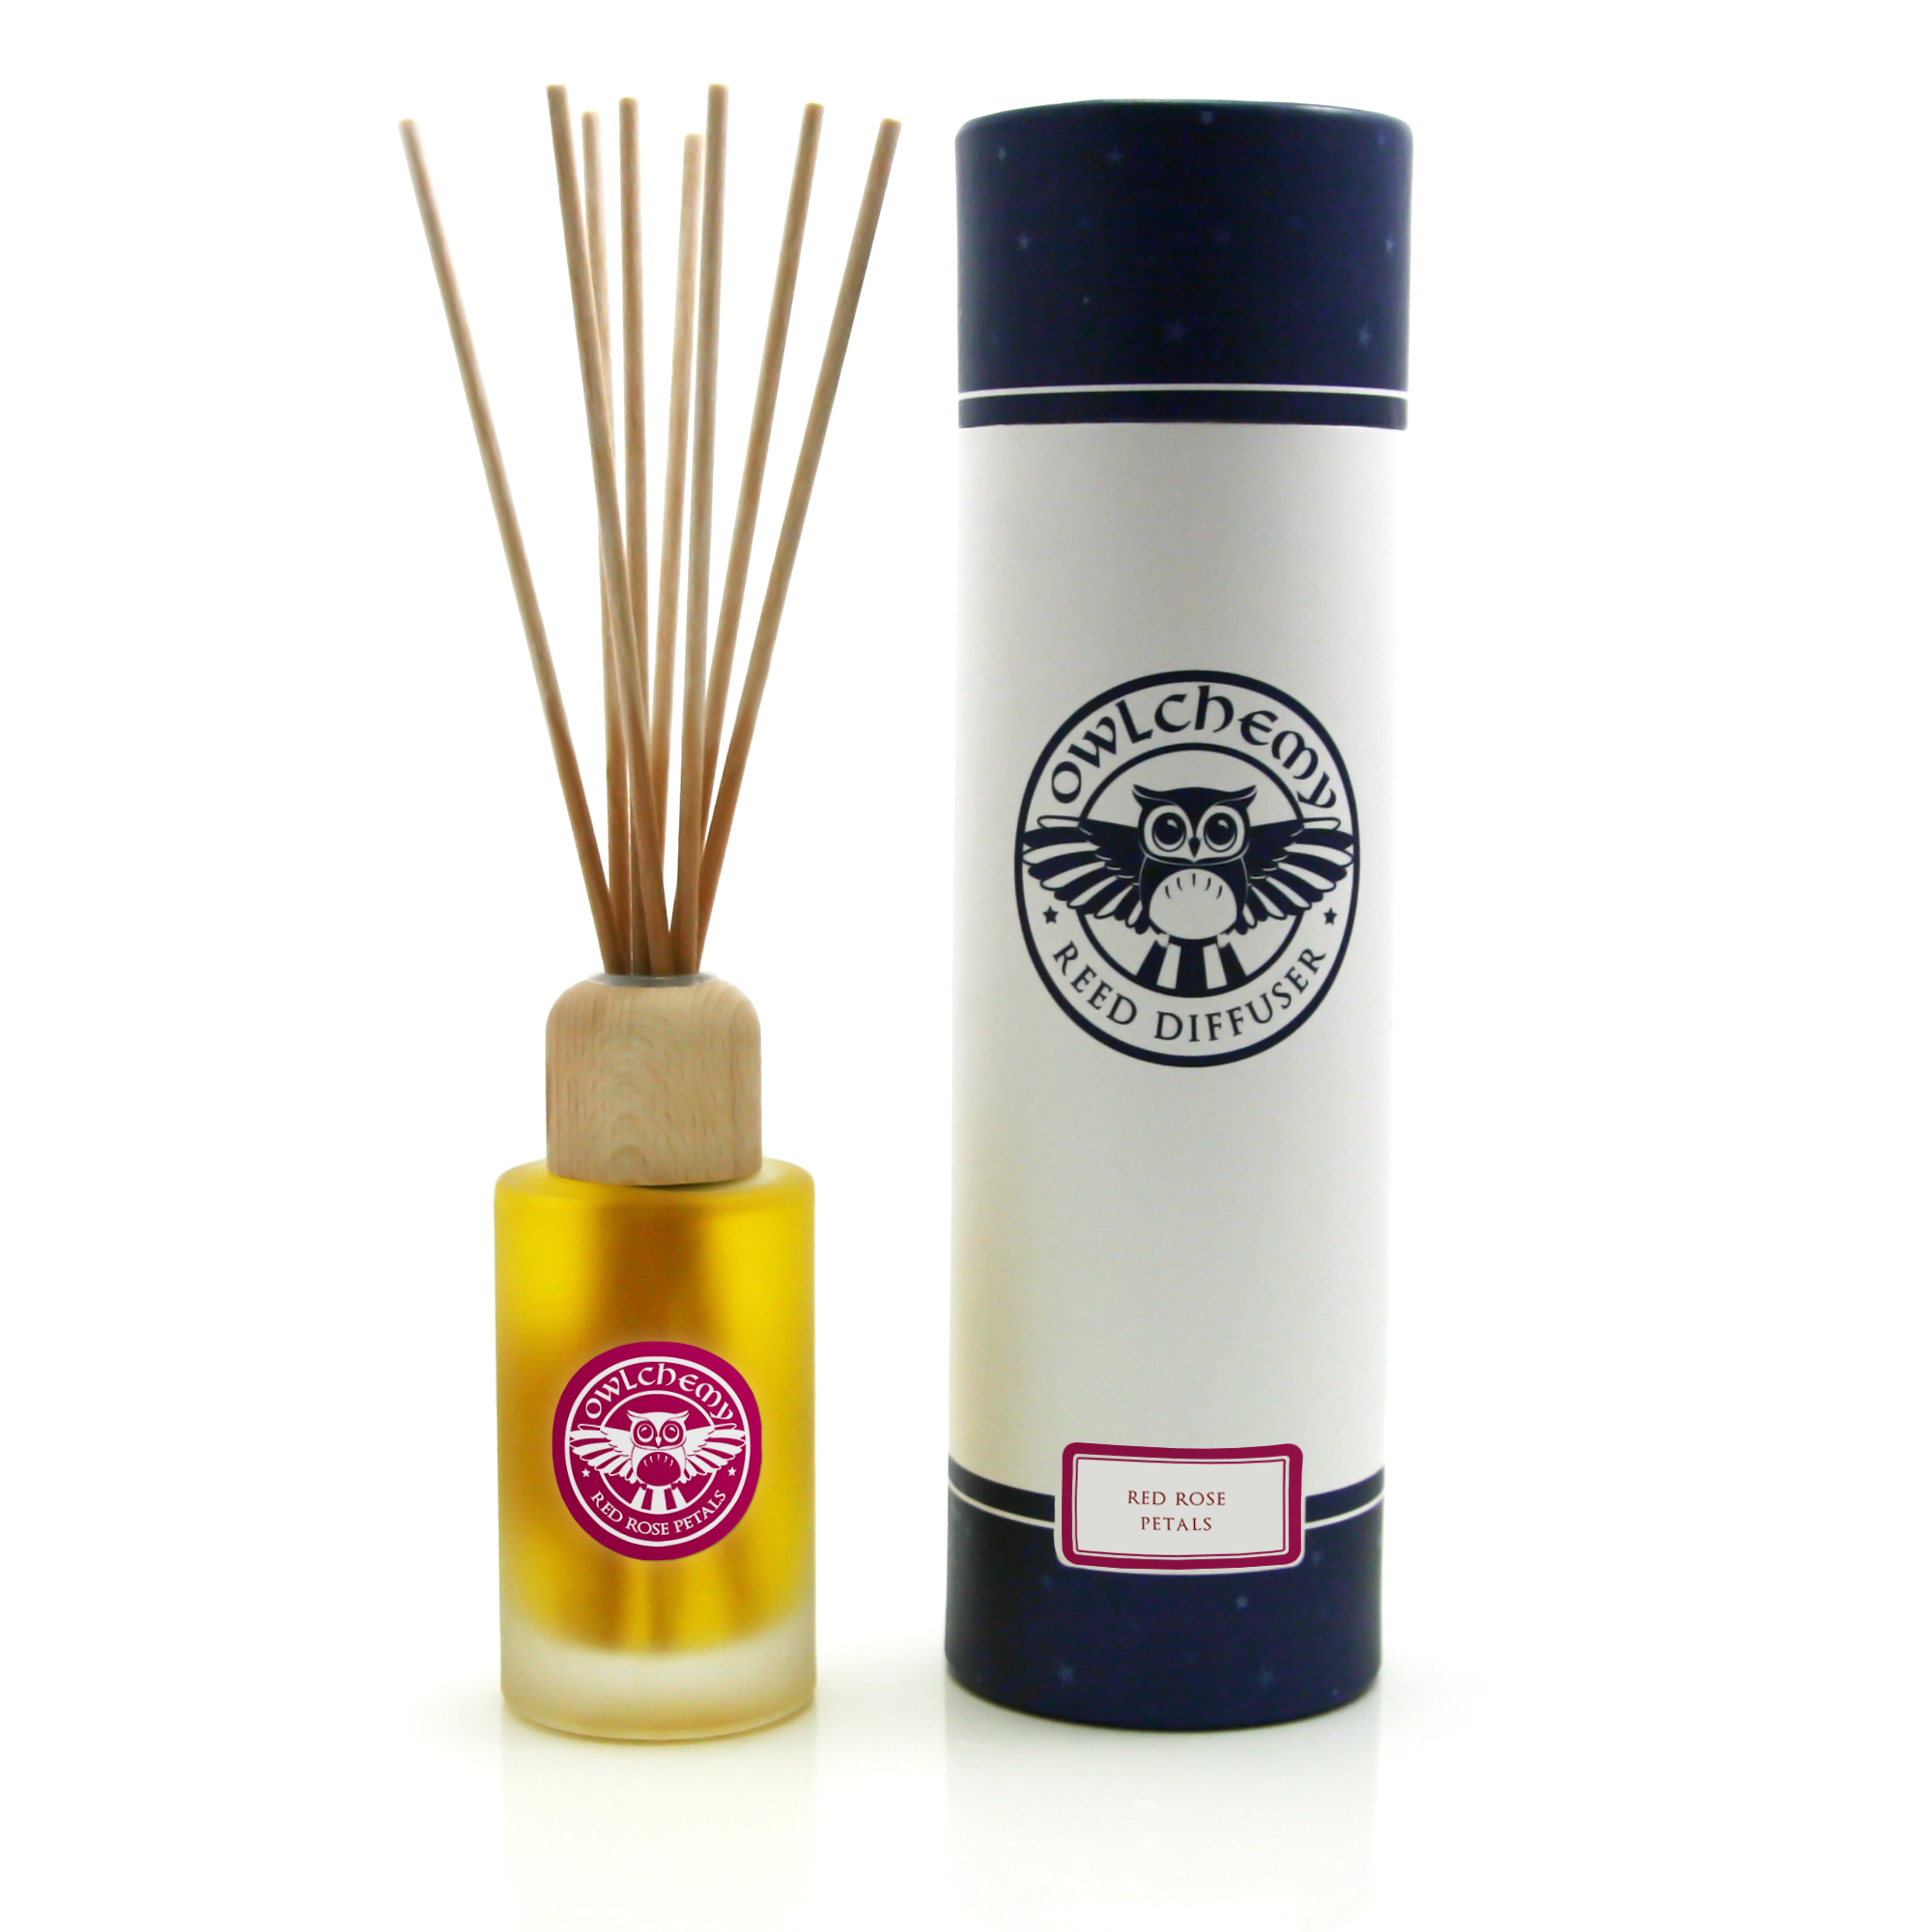 A bottle of our Celebration Reed Diffuser with Red Rose Petals next to its box.